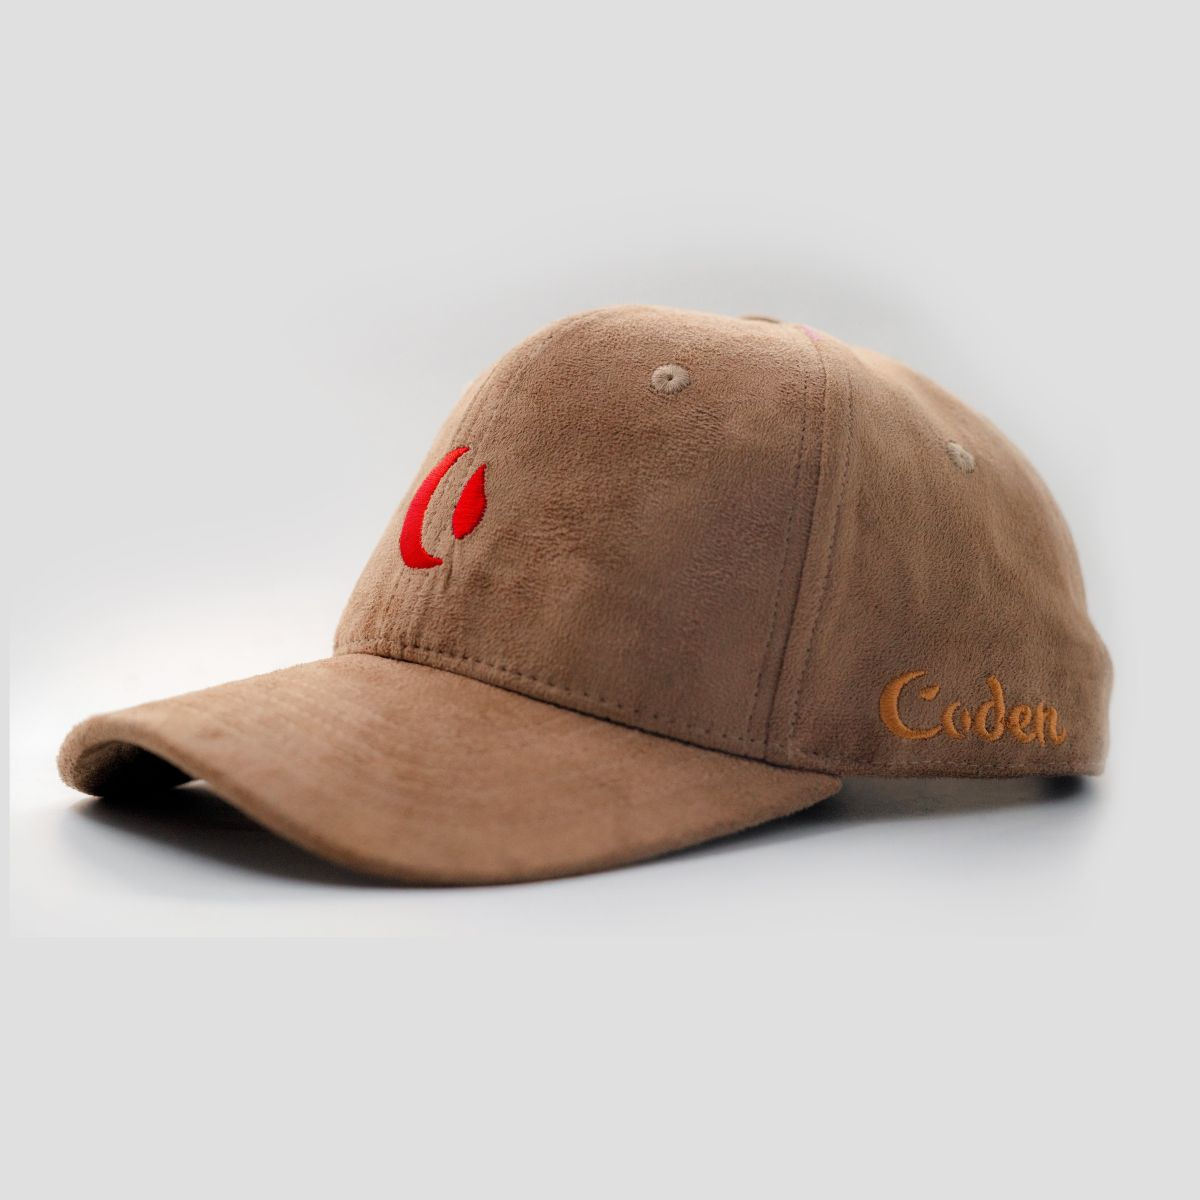 Brown Coden Prime Baseball Cap